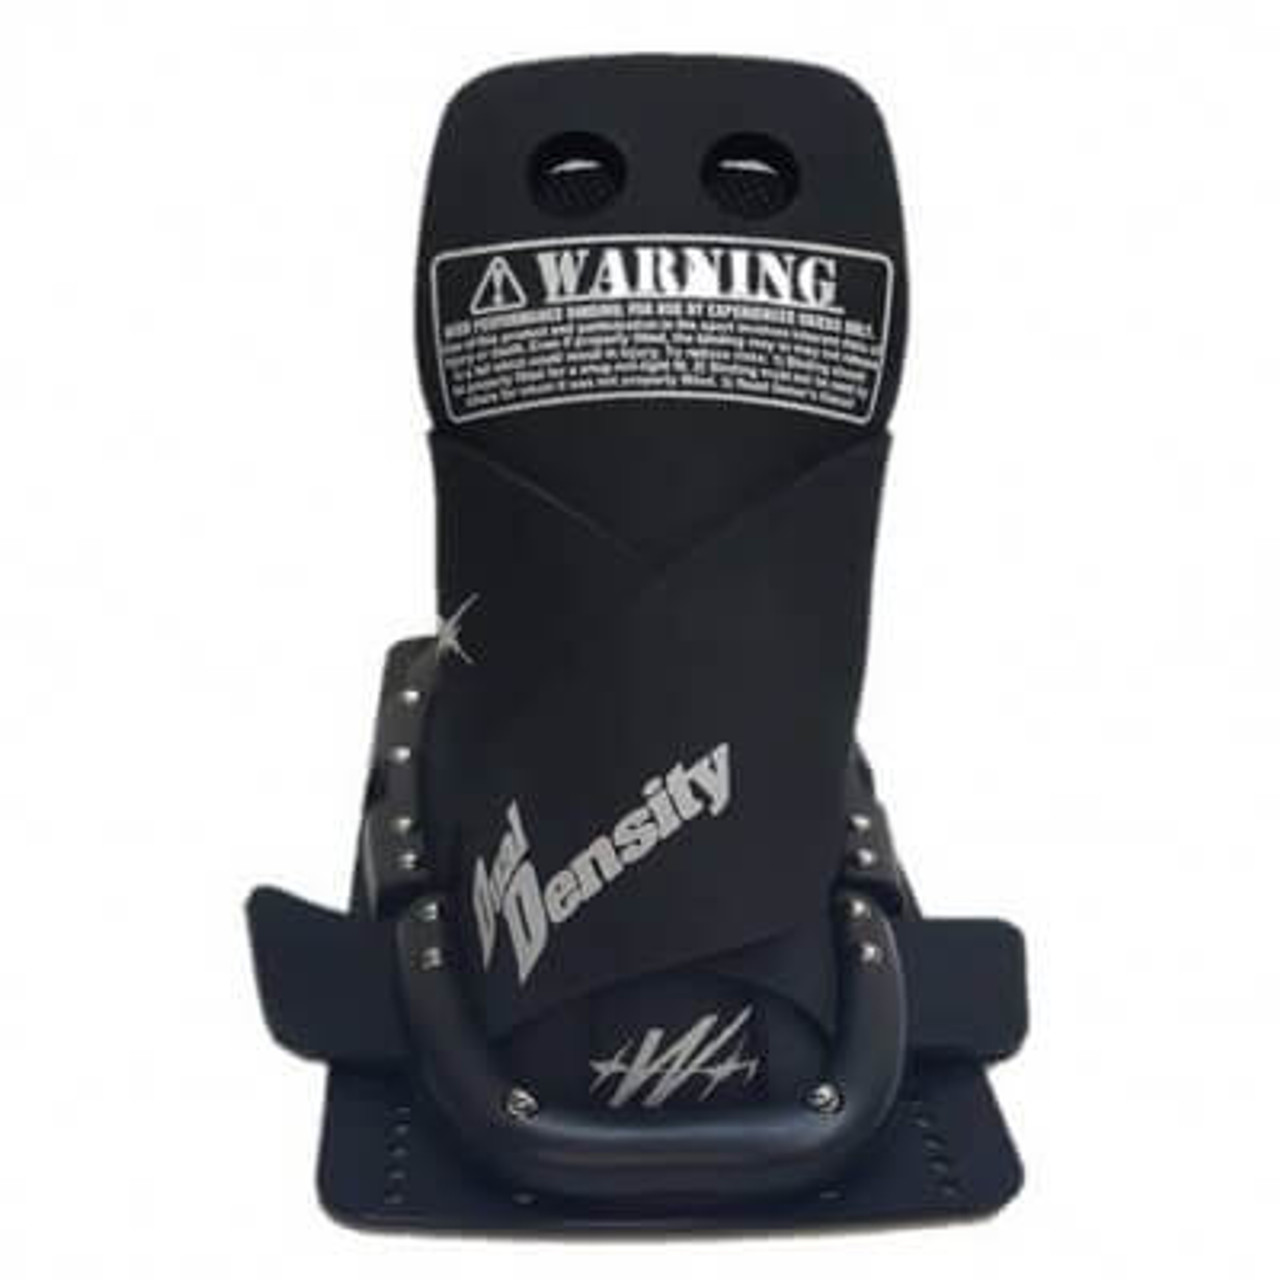 Wiley's Hardcore Front High Wrap with Lateral Ankle Supports